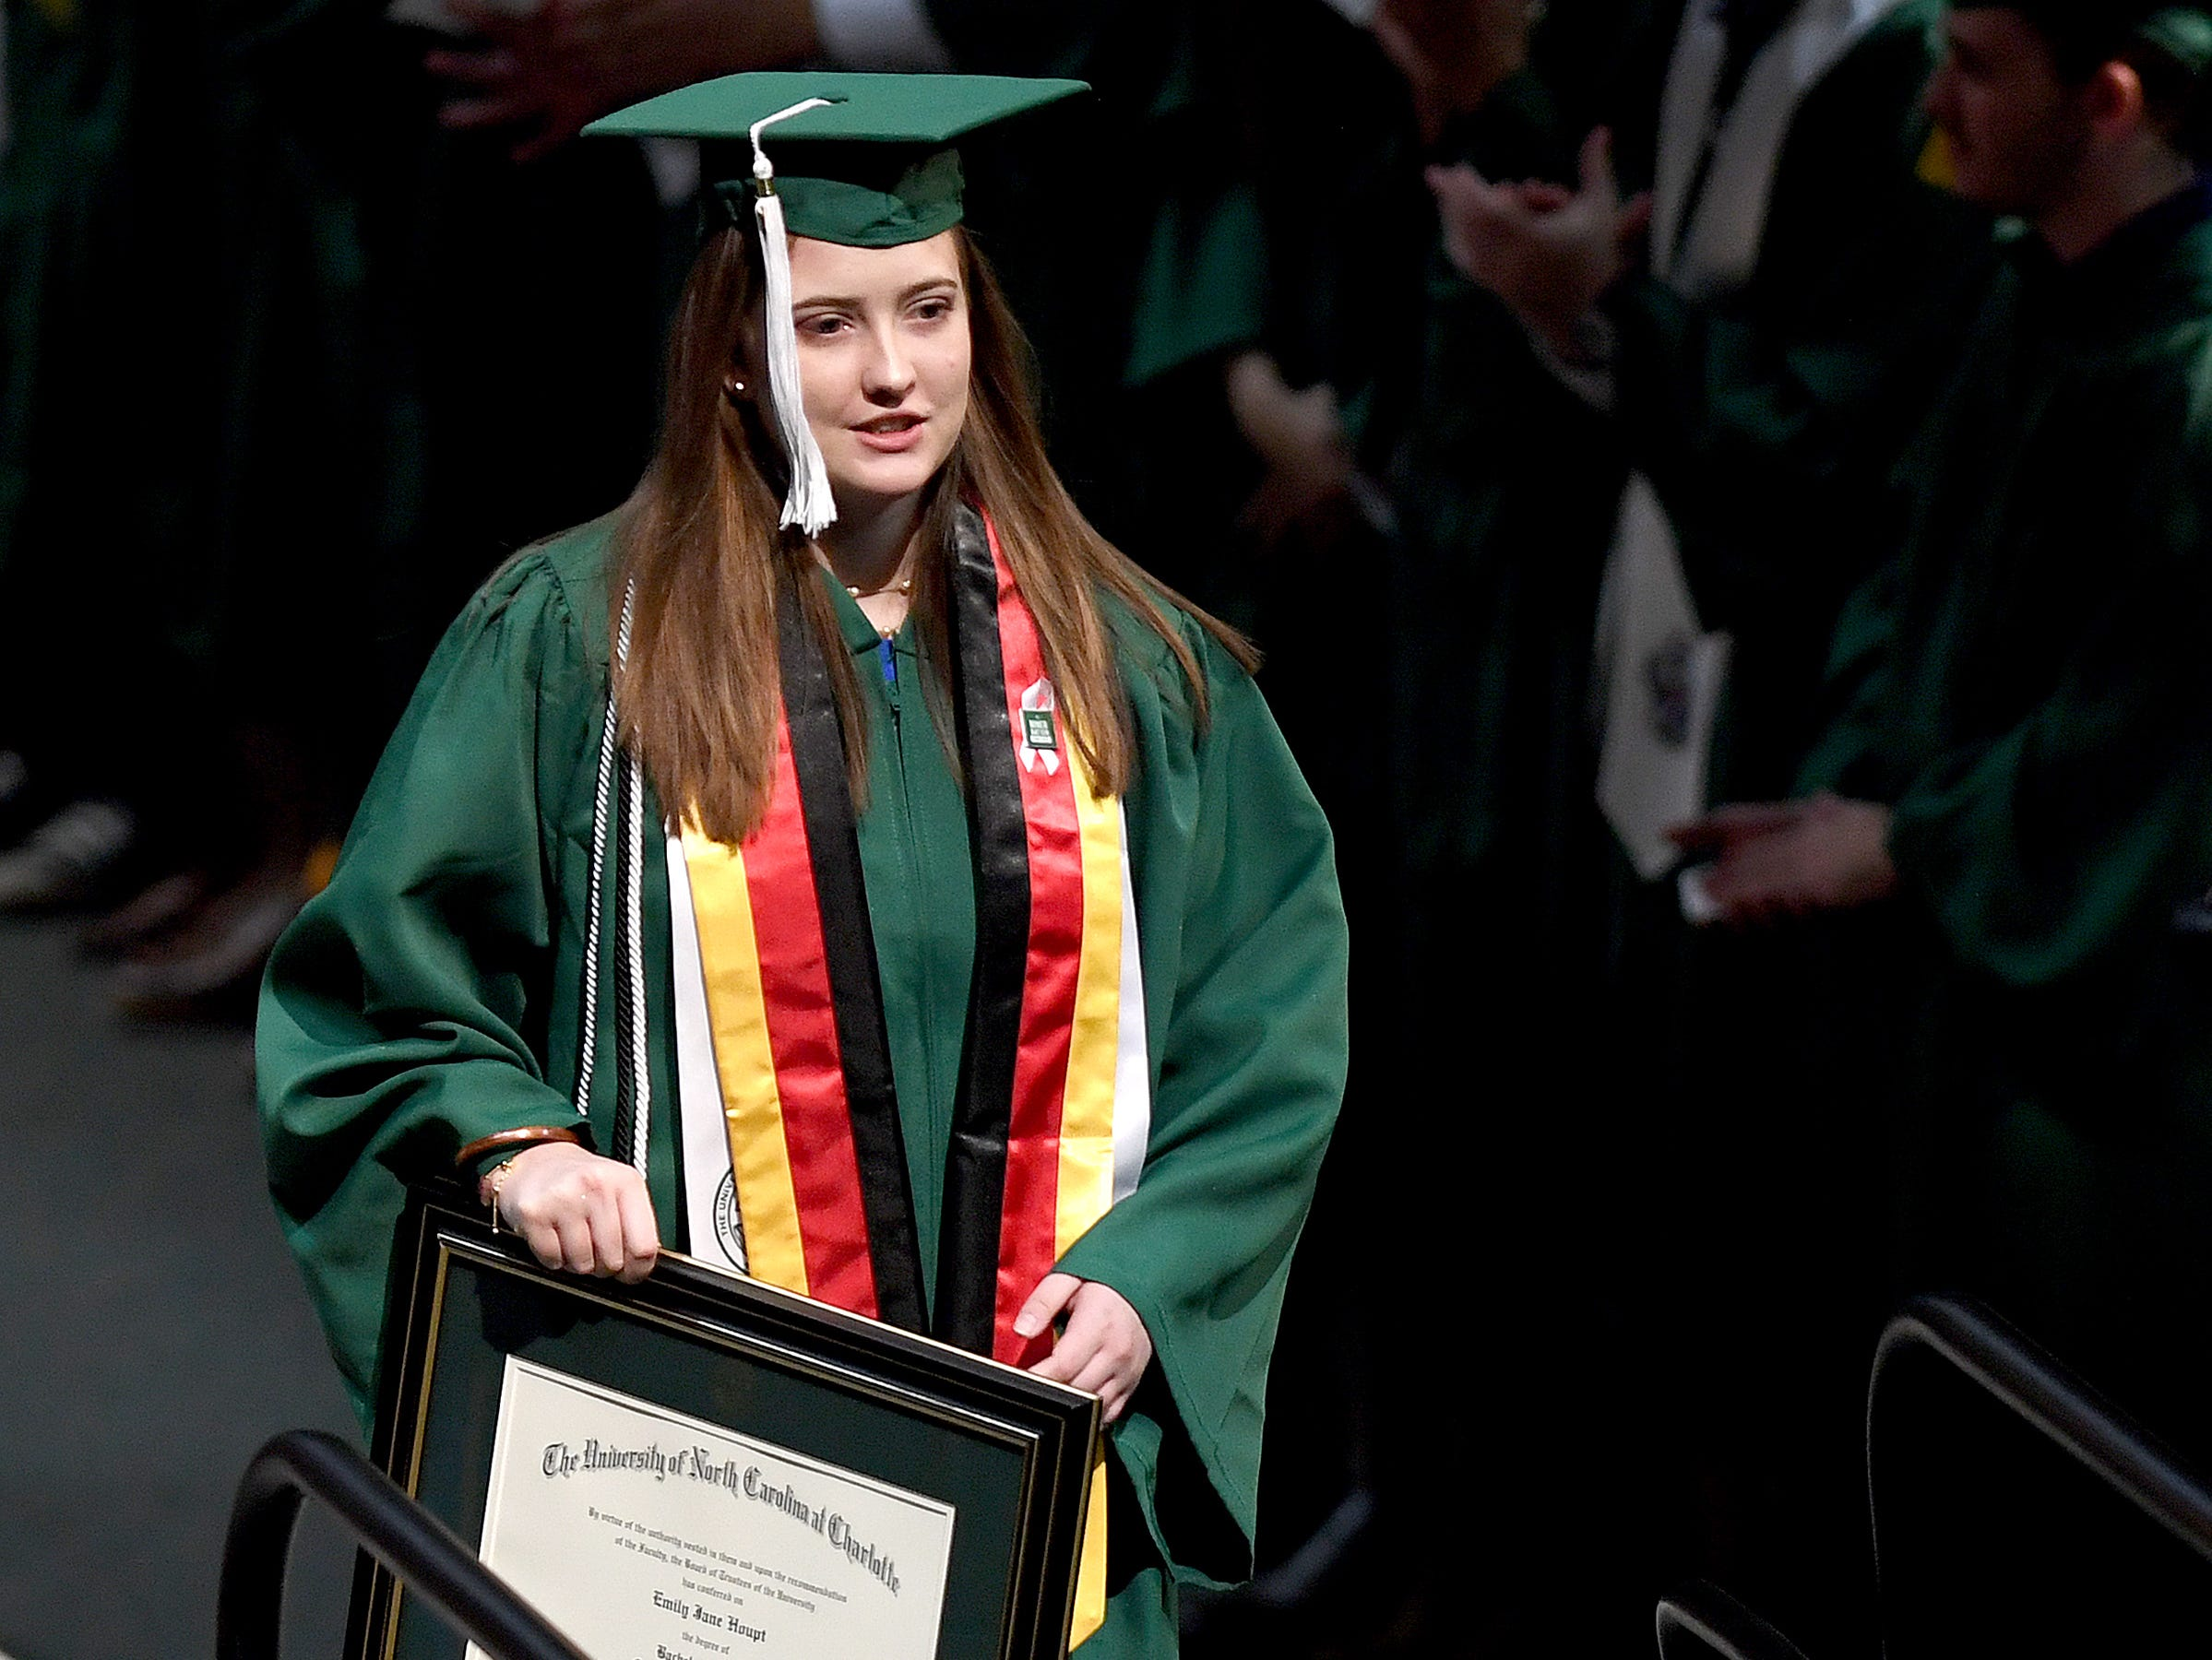 UNC Charlotte graduate Emily Houpt is honored as she receives her B.A in International Studies during the University's Commencement ceremony for the College of Liberal Arts and Sciences in Charlotte on May 11, 2019. Houpt was injured in the April 30 shooting at the university.